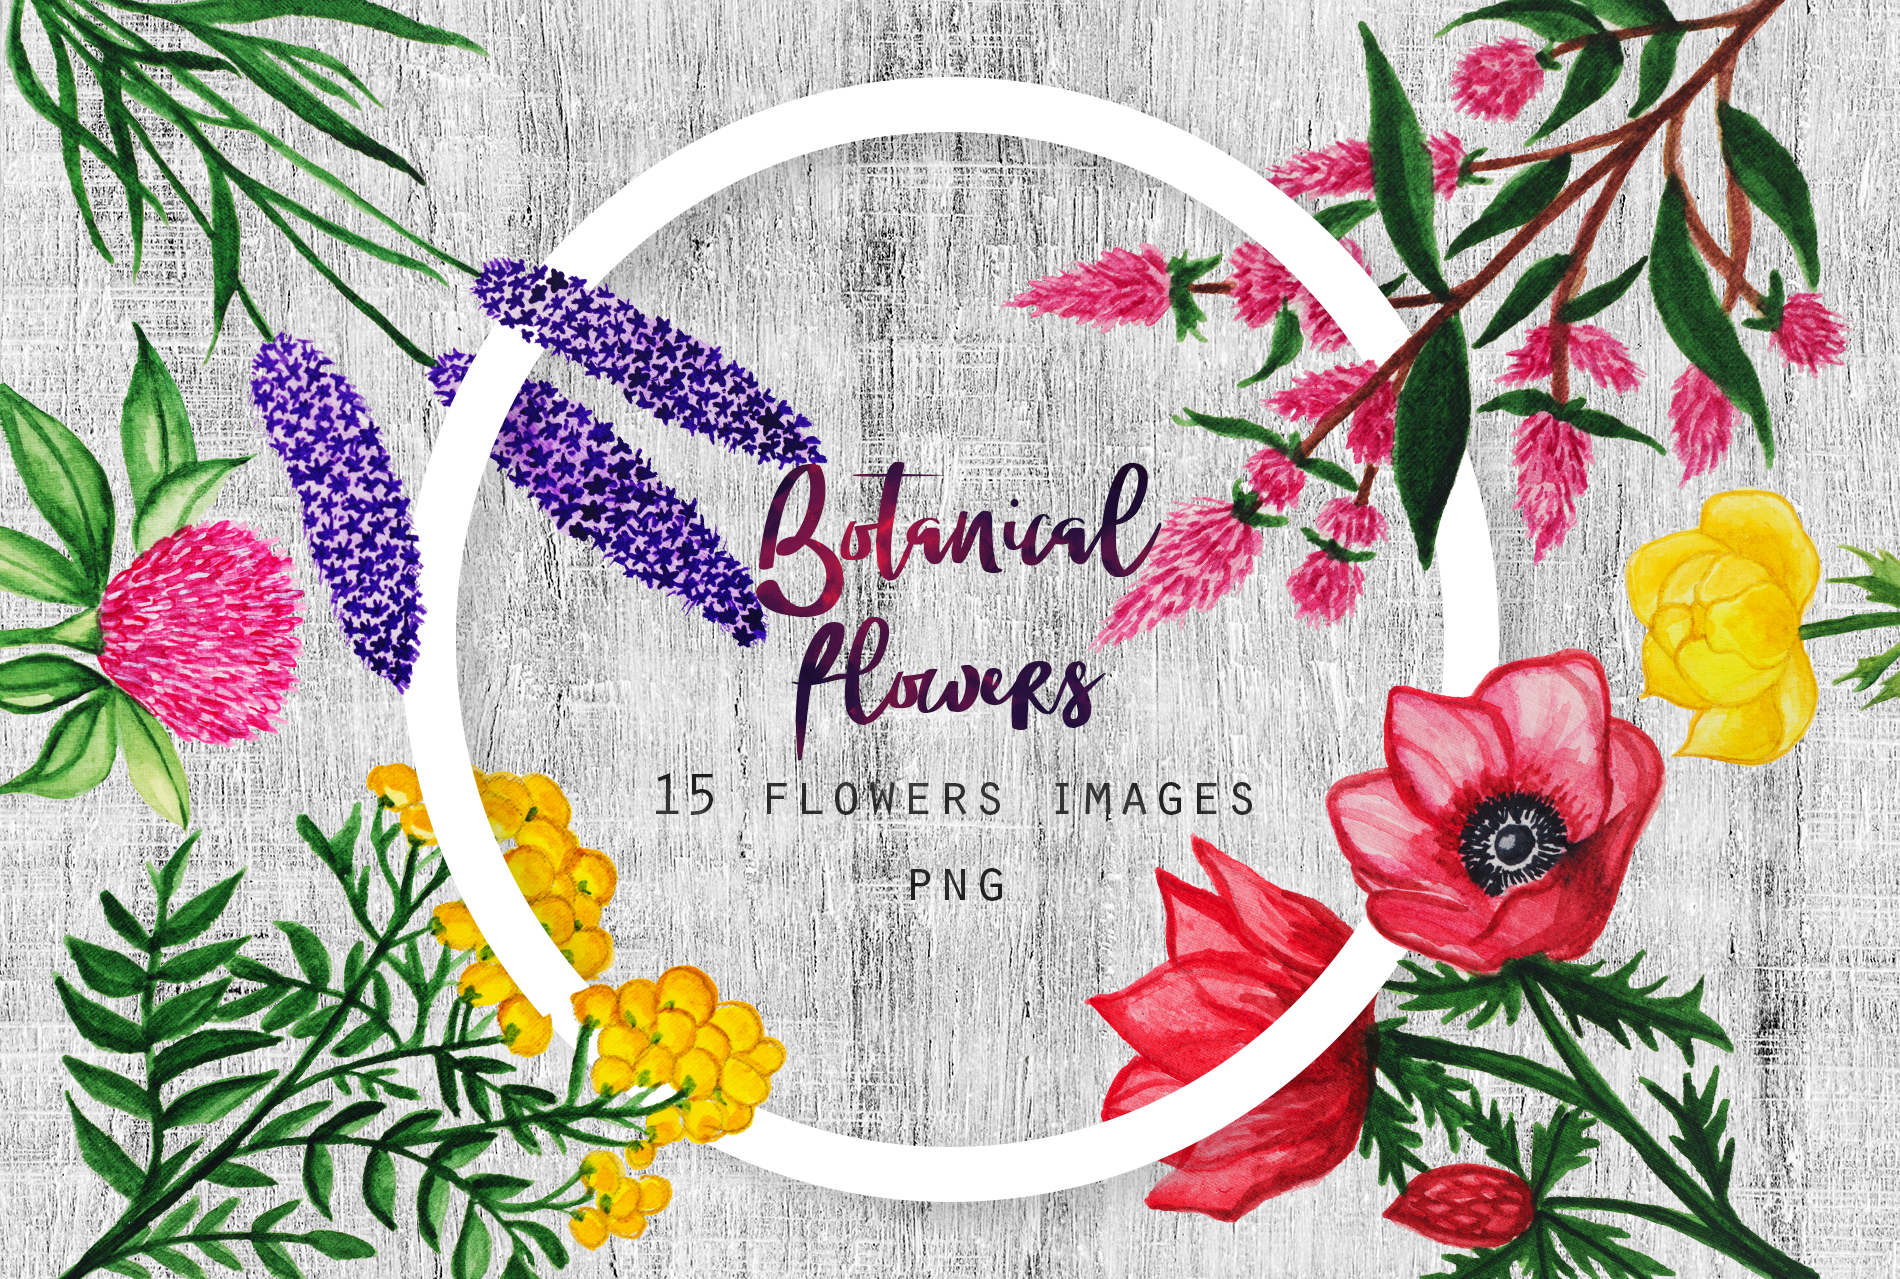 Watercolor Botanical Flowers example image 1